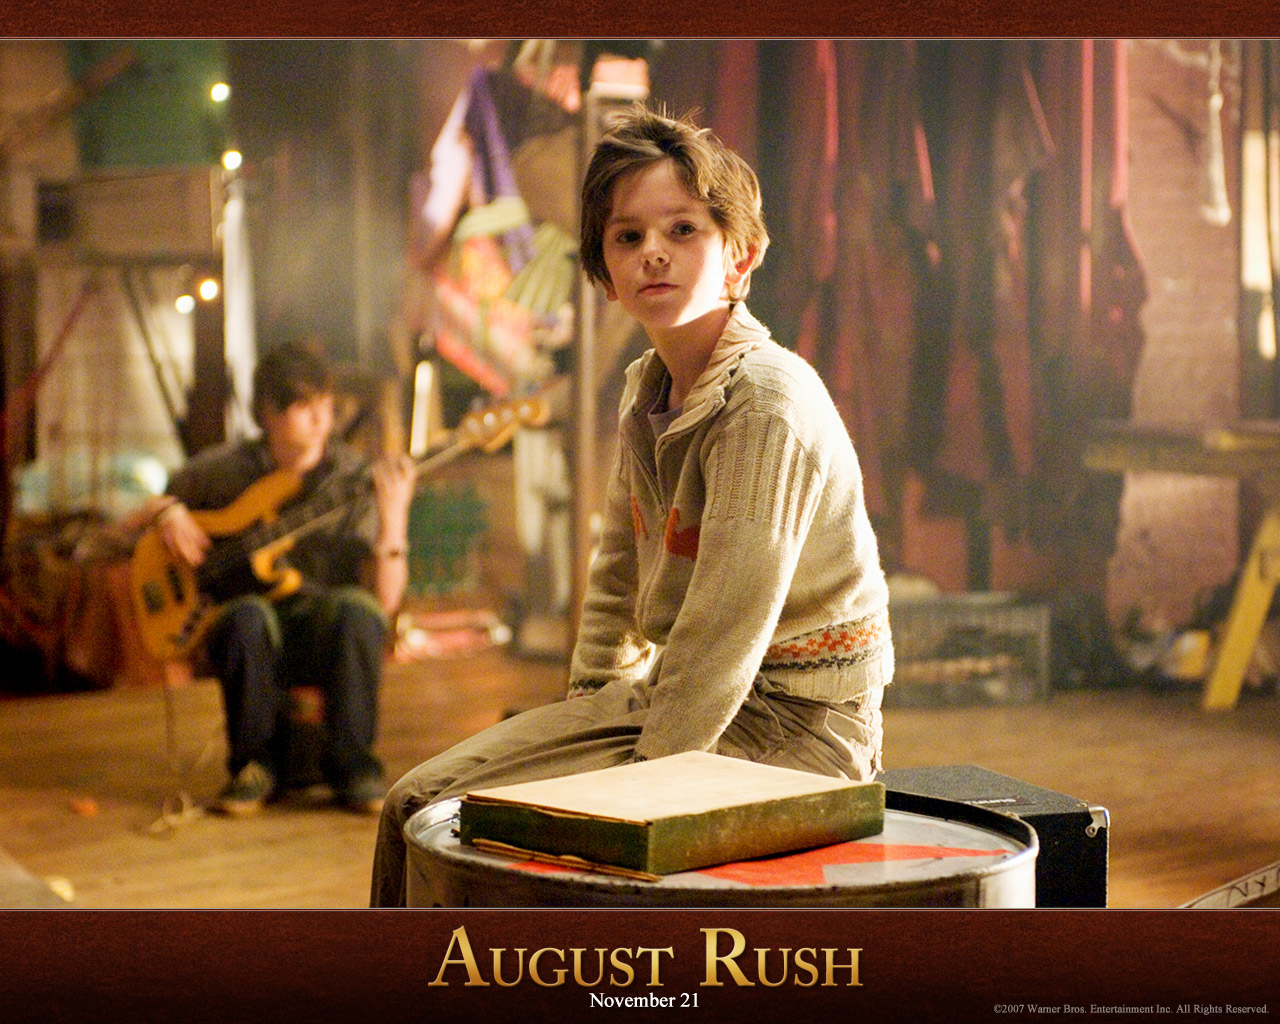 August Rush Backgrounds on Wallpapers Vista